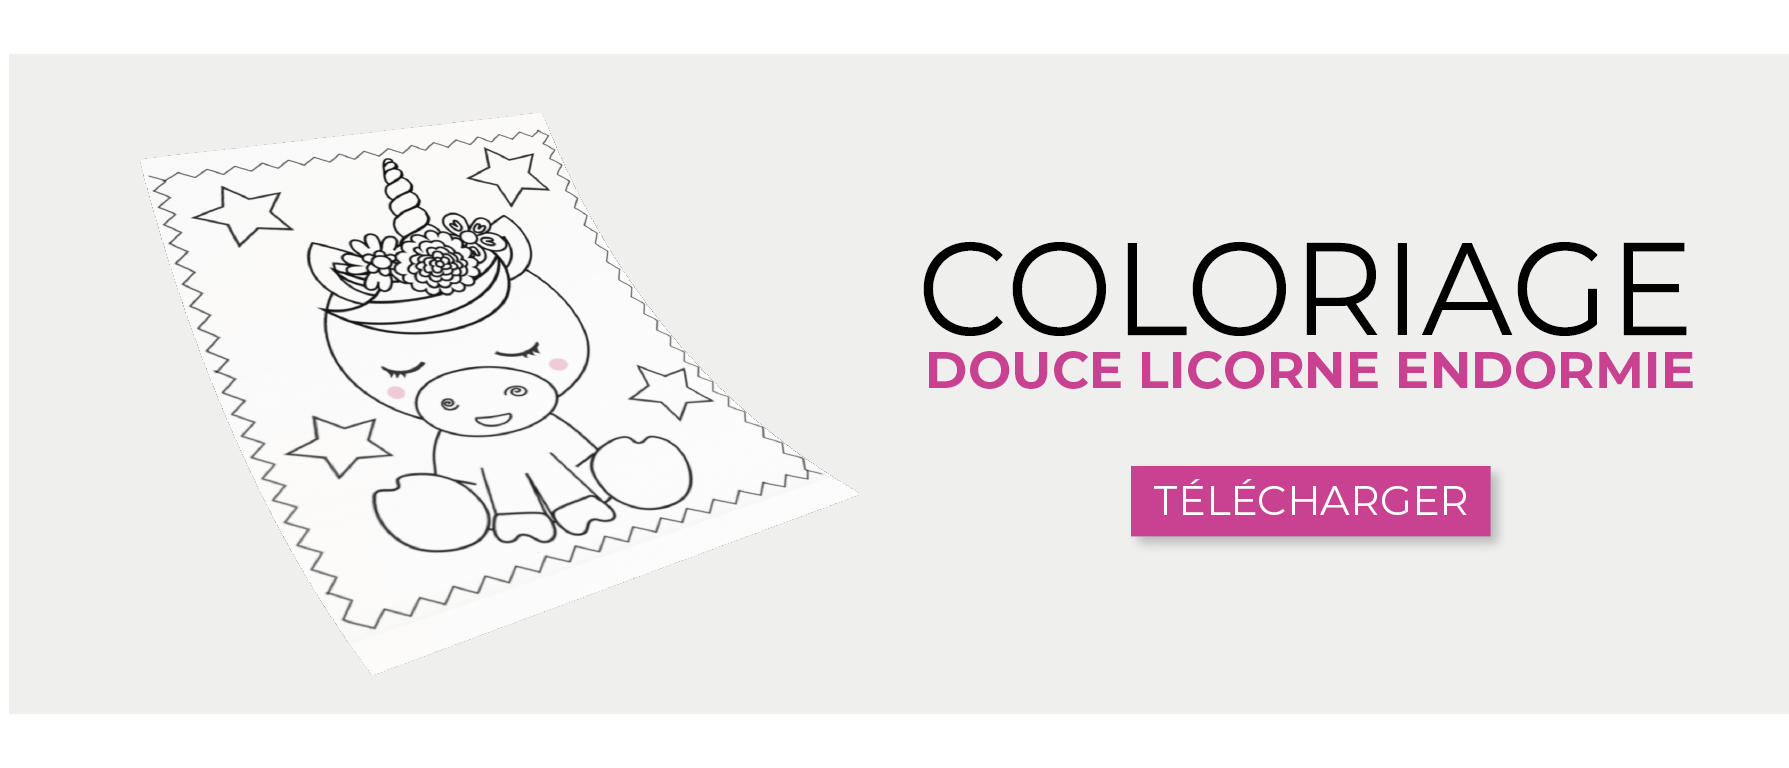 coloriage_licorne_douce_endormie